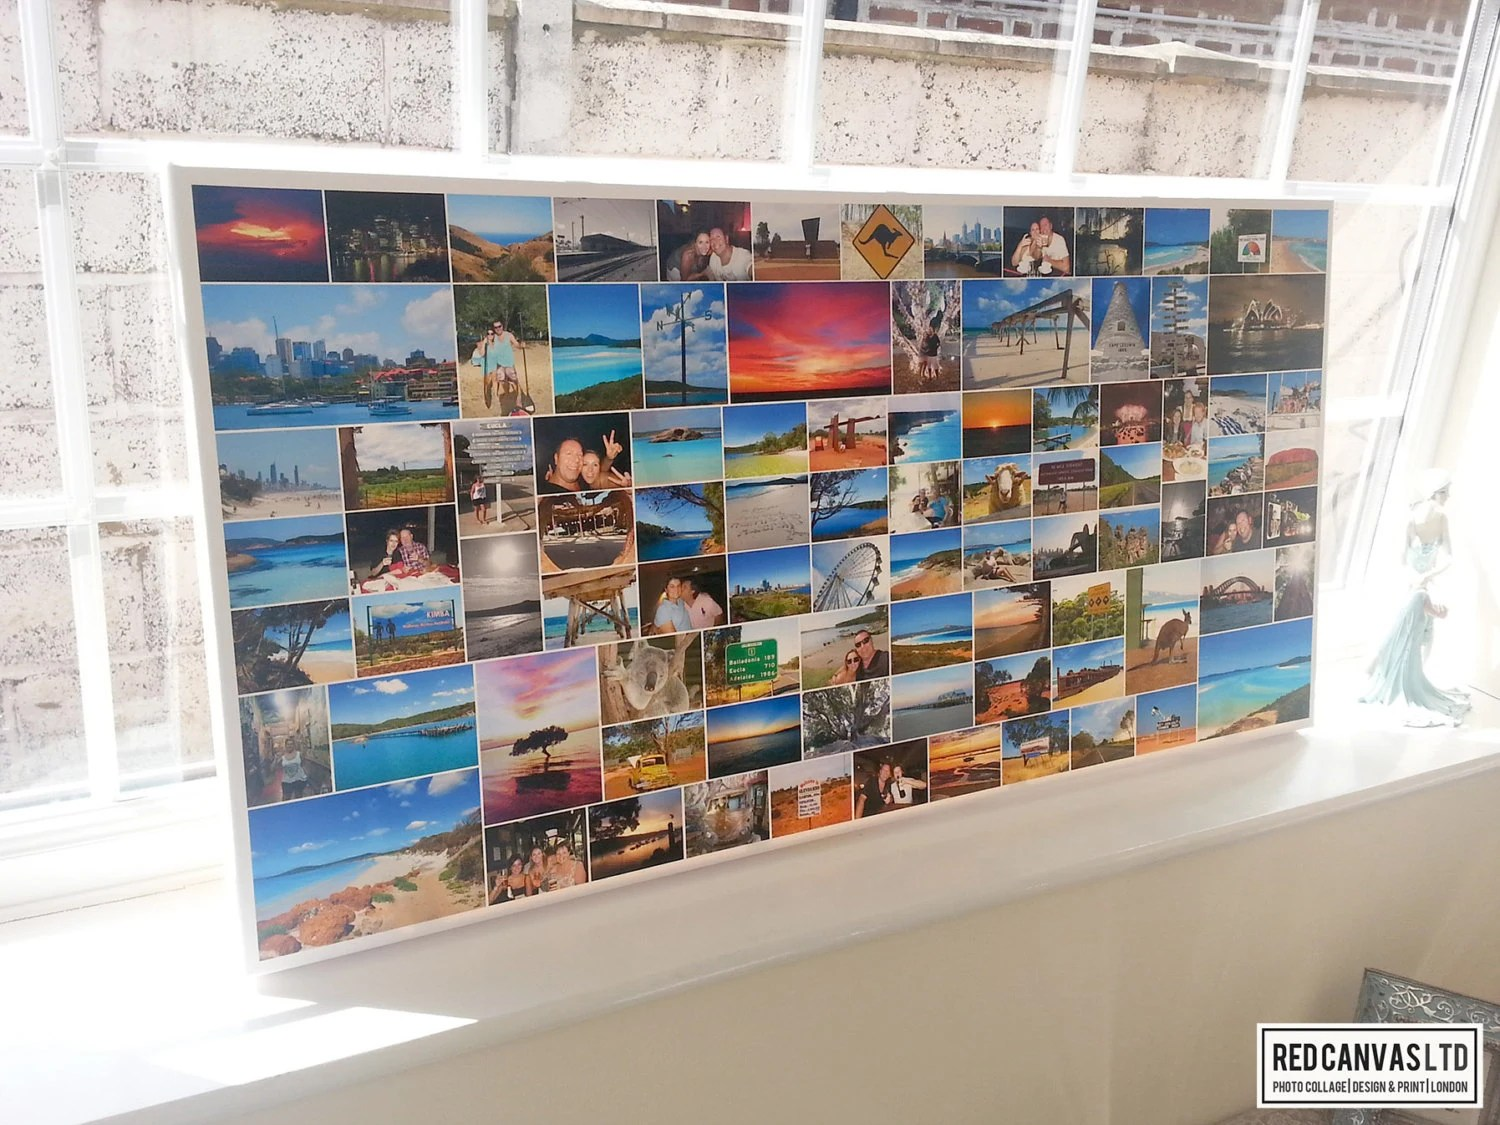 Fotocollage Auf Leinwand Foto Collage Leinwand Druck 20 X 40 Zoll Bis Zu 100 Fotos Premium Hand Made In Uk